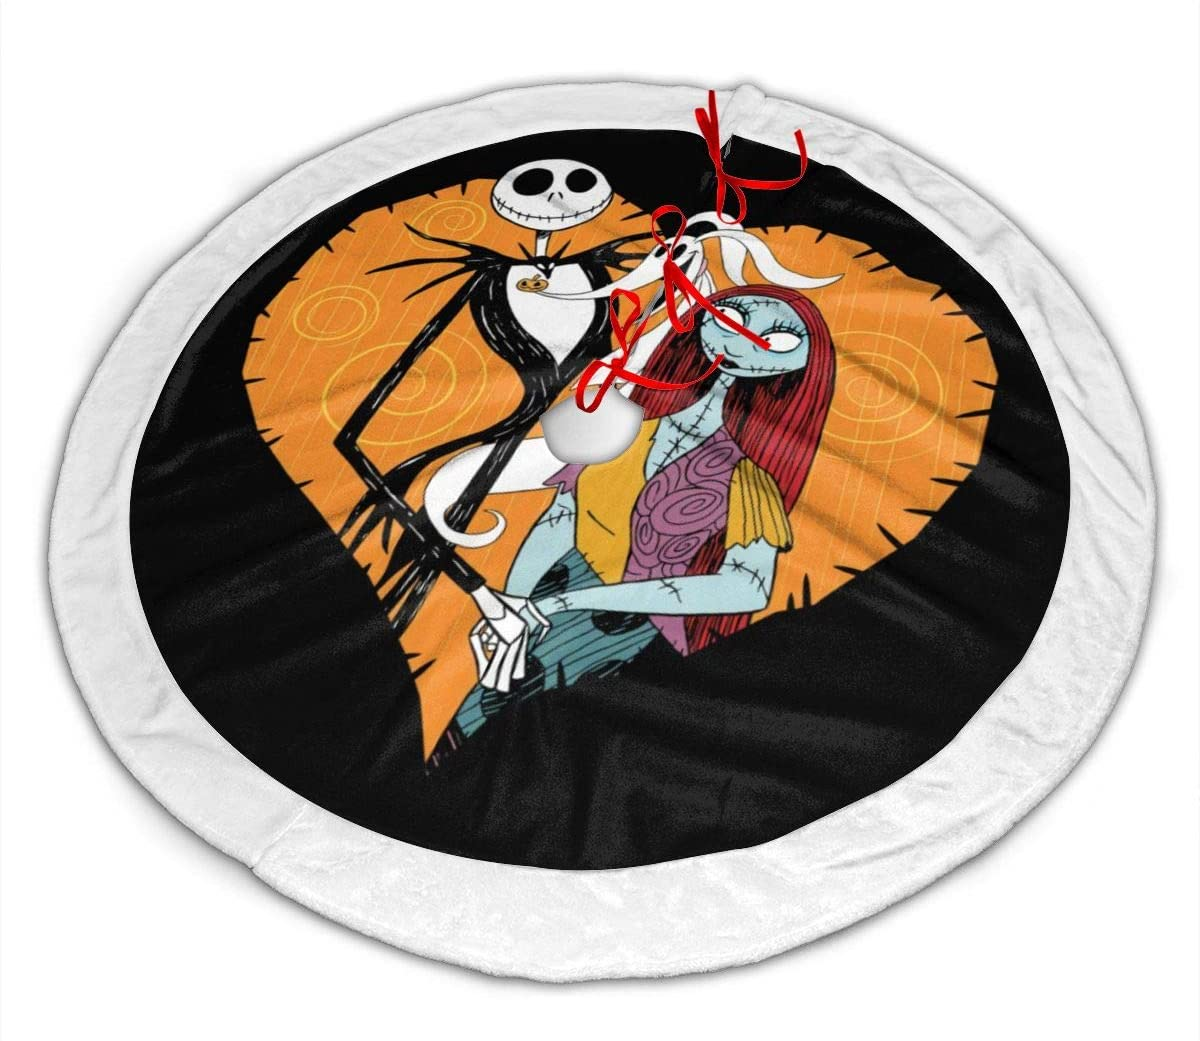 ASO-SLING The Nightmare Before Christmas Merry Christmas Tree Skirt Winter Xmas Tree Mat with Plush Faux Fur Trim Holiday Party Decorations Themed with Christmas Ornaments